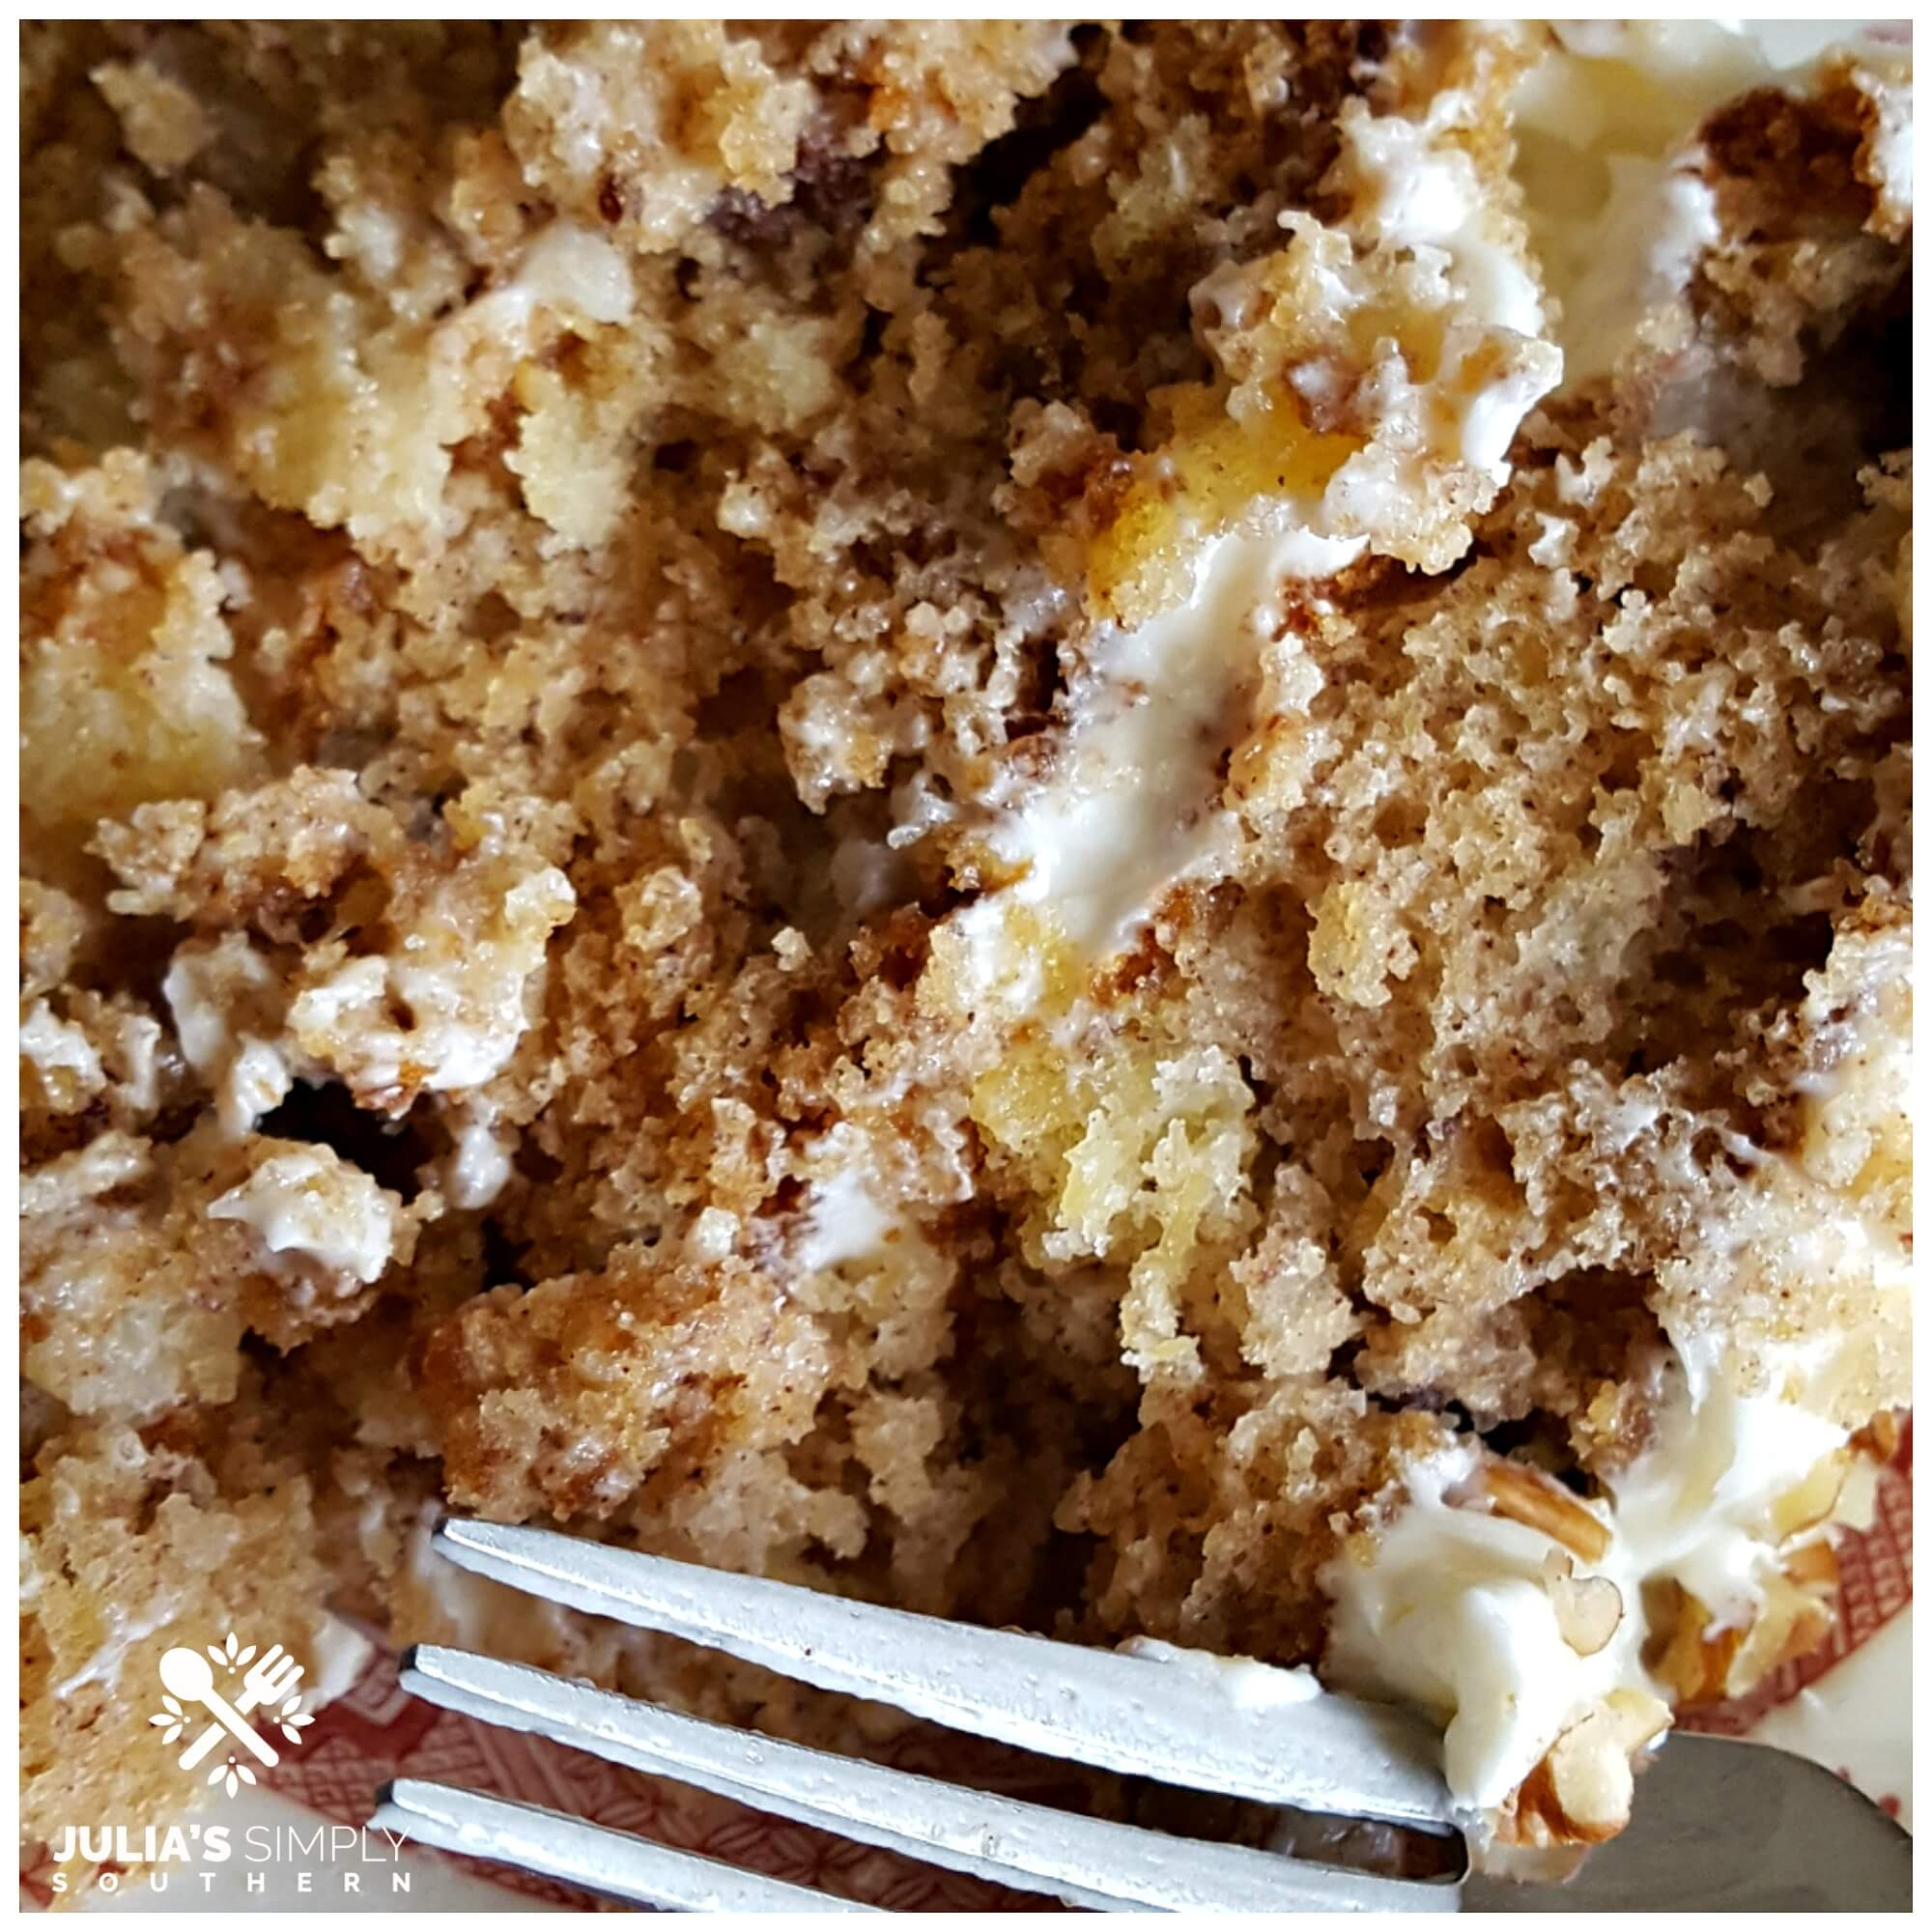 Slice of Hummingbird Cake and Silver Fork